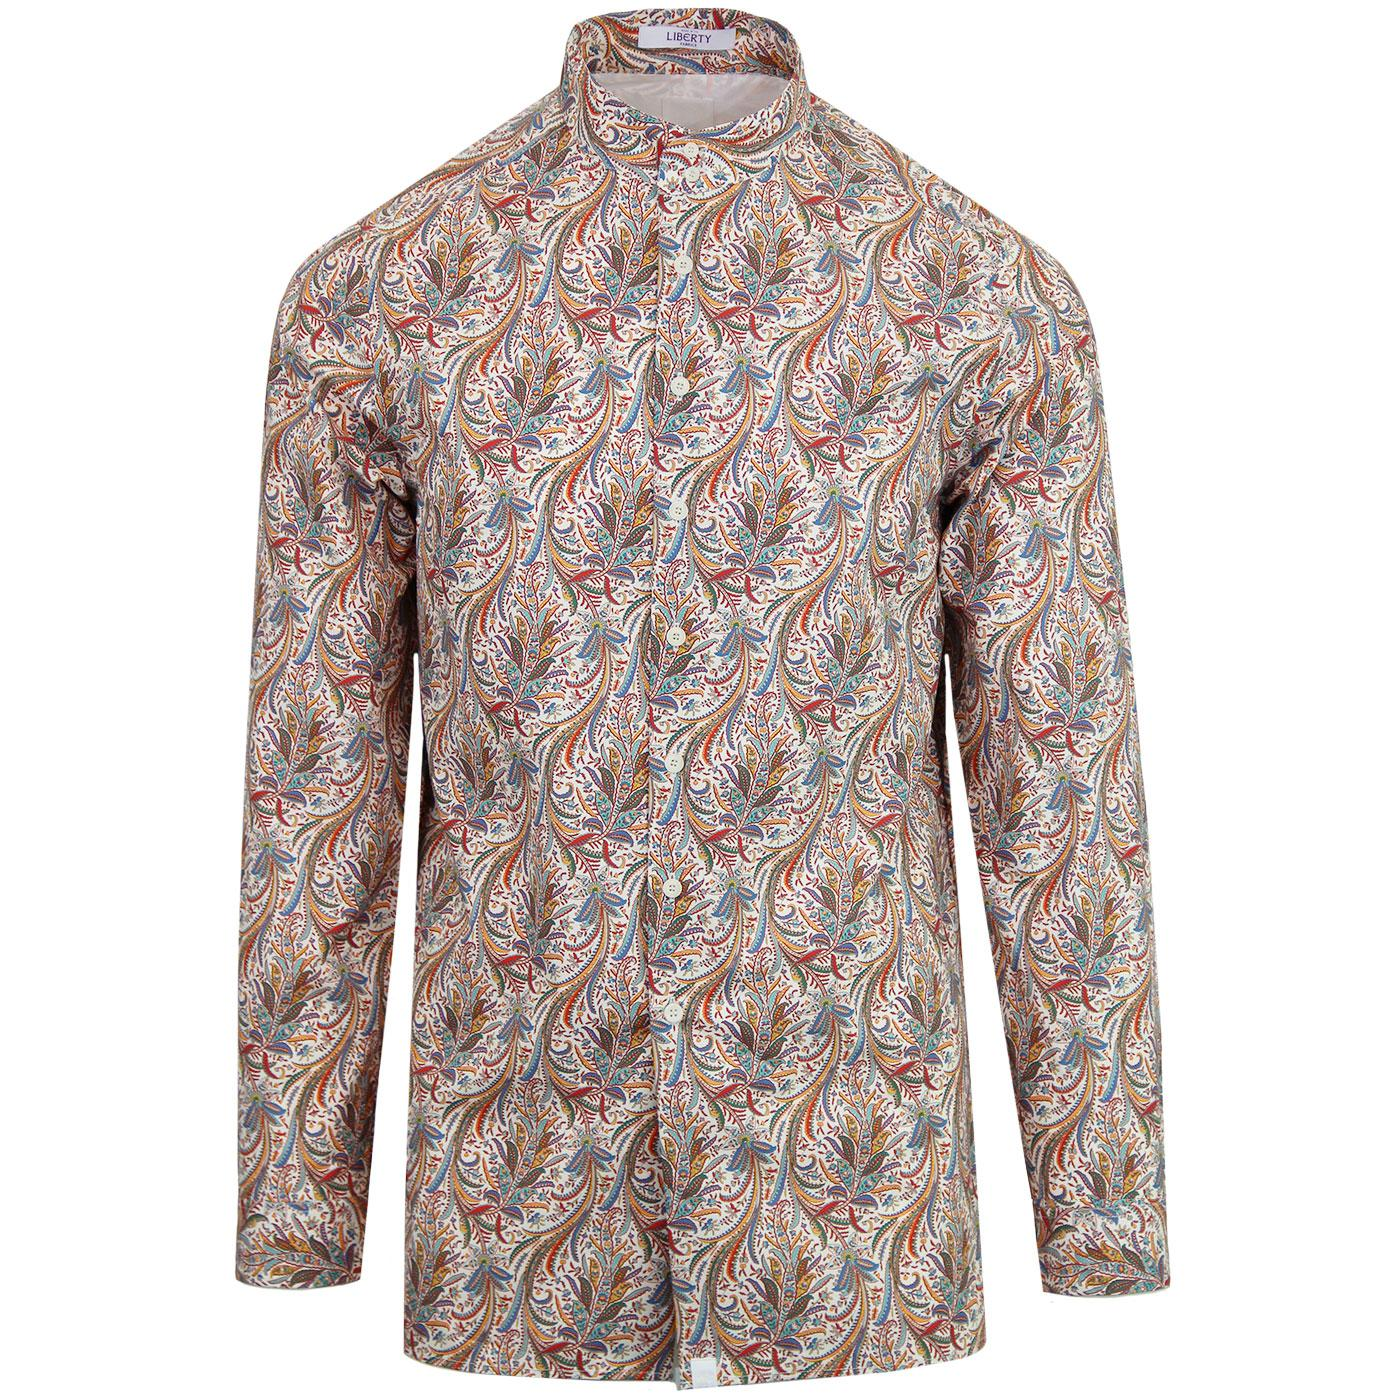 PRETTY GREEN x THE BEATLES Liberty Print Shirt